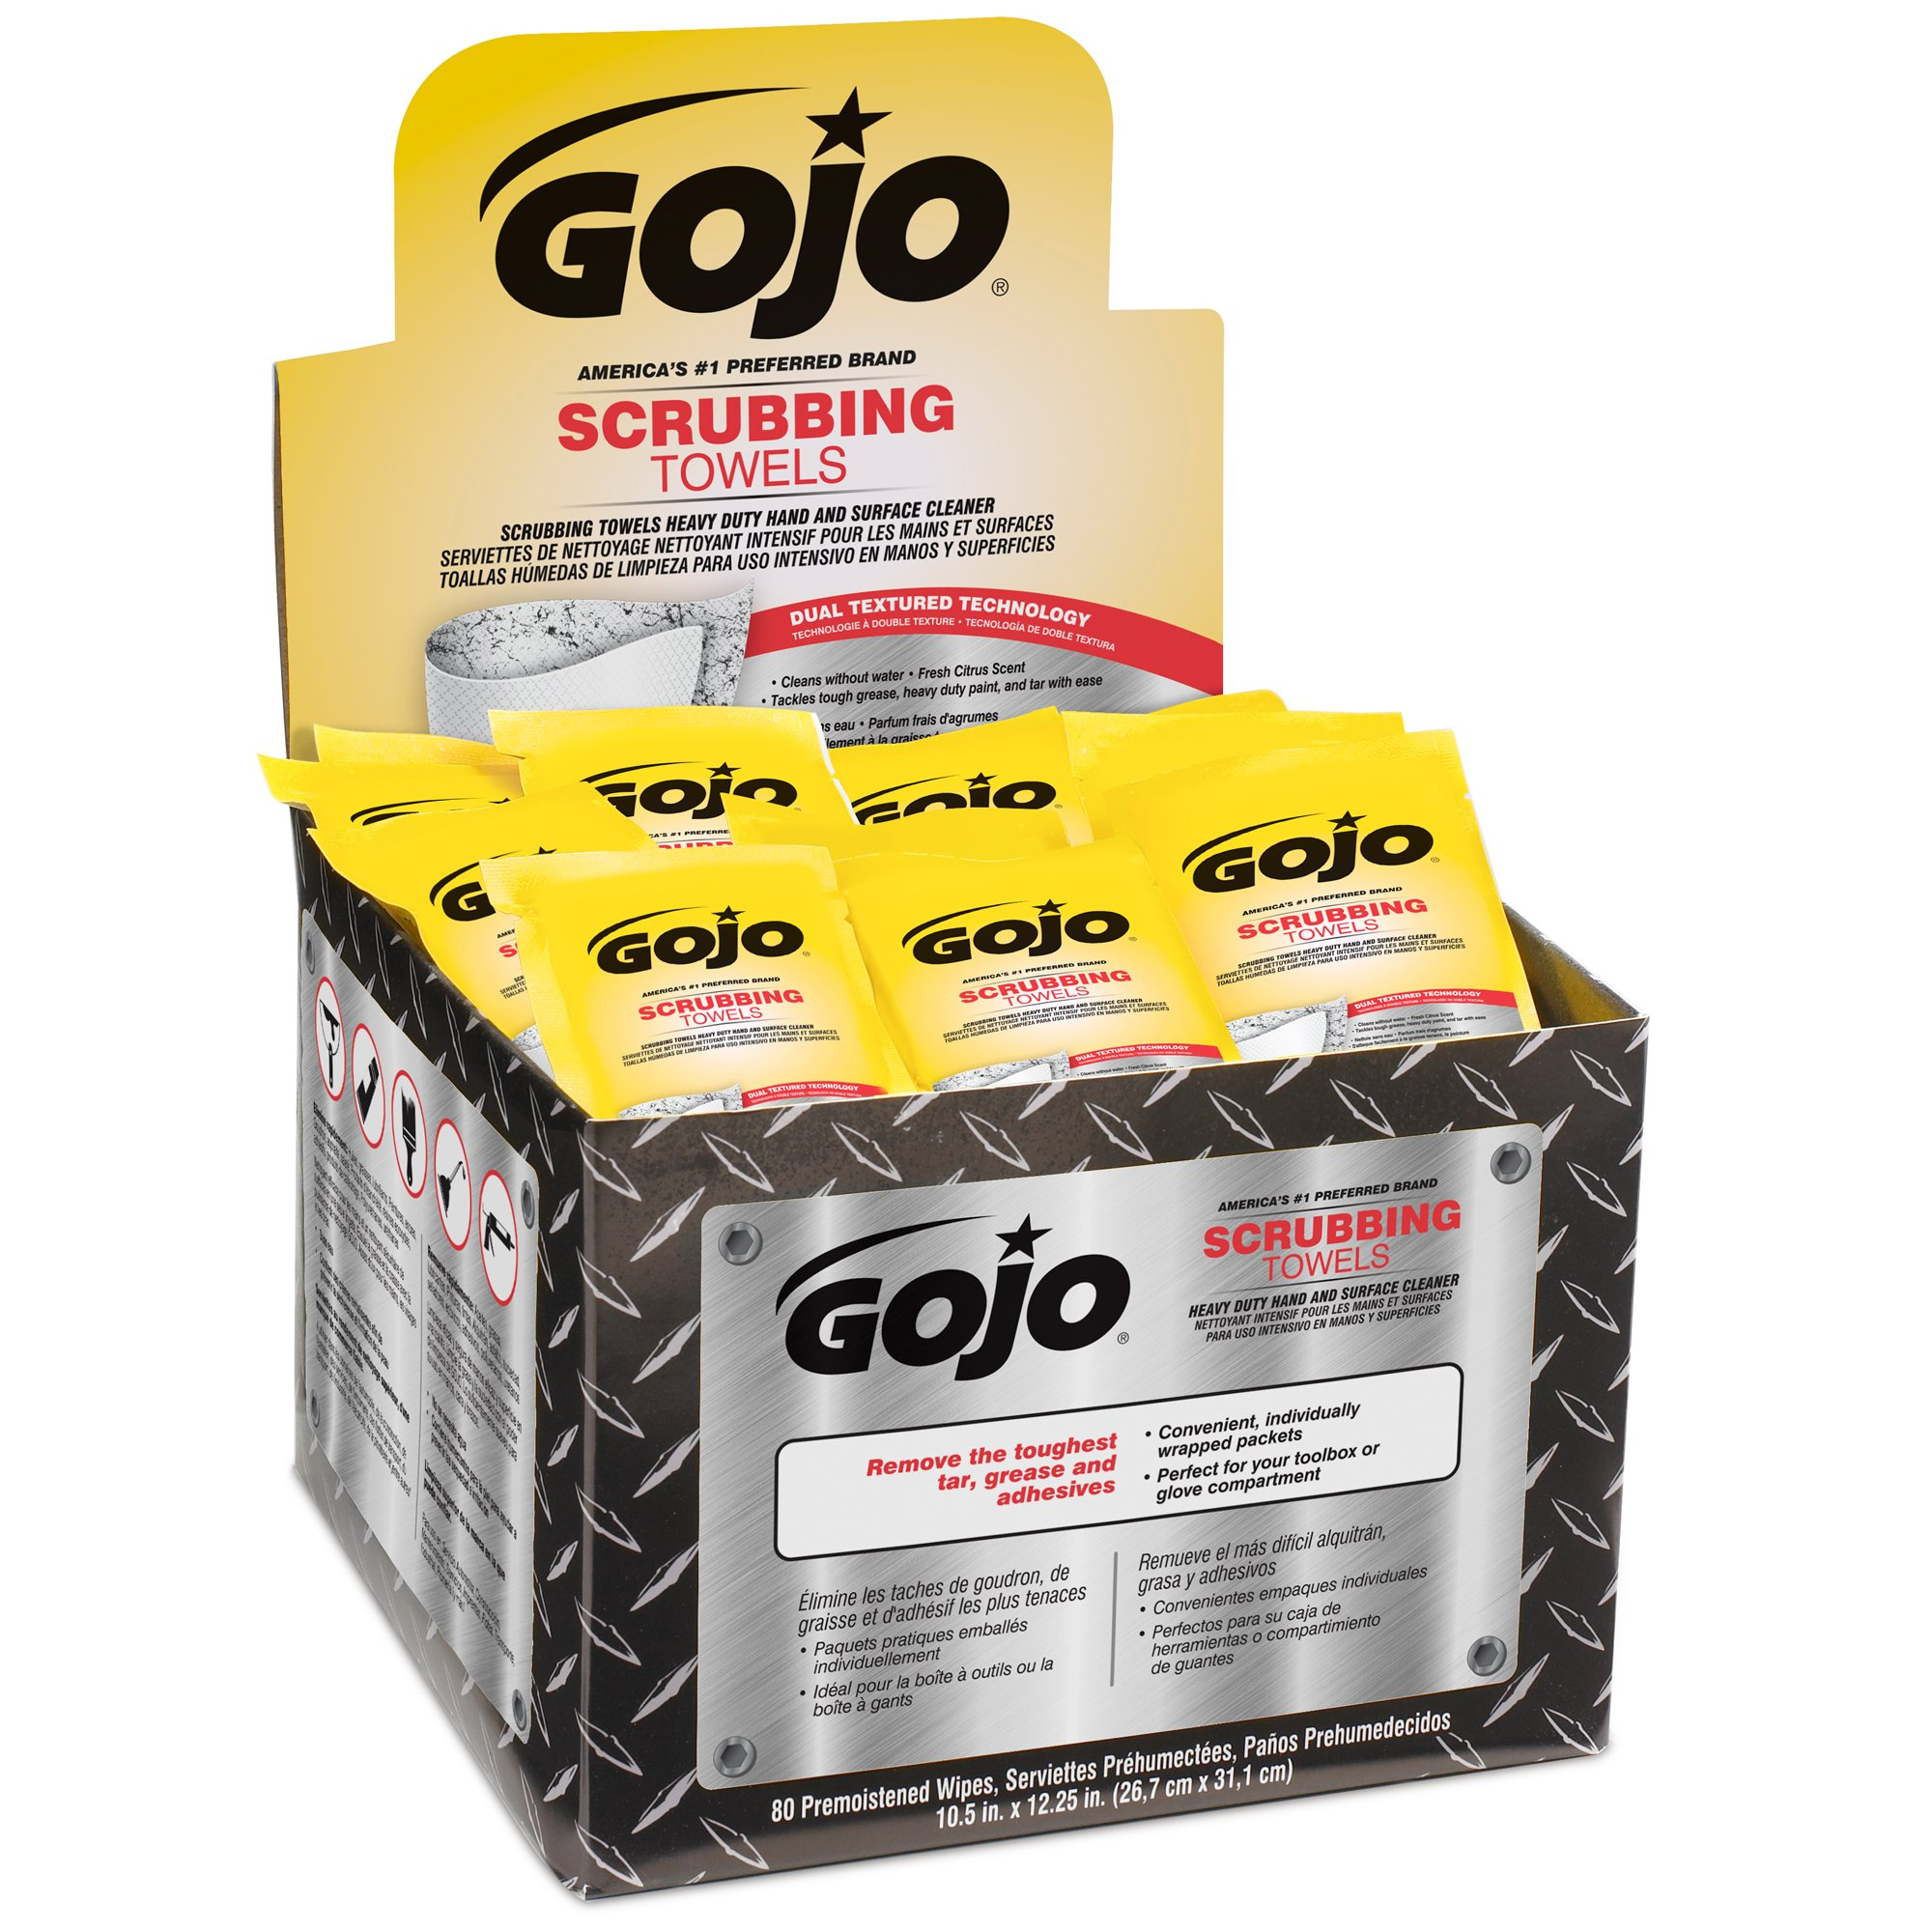 GOJO 8745-04 Scrubbing Towels, 80 Count Individually Wrapped, Heavy Duty Hand Cleaning for Hands and Surfaces, 23.16 fl. oz., X-Large by Gojo